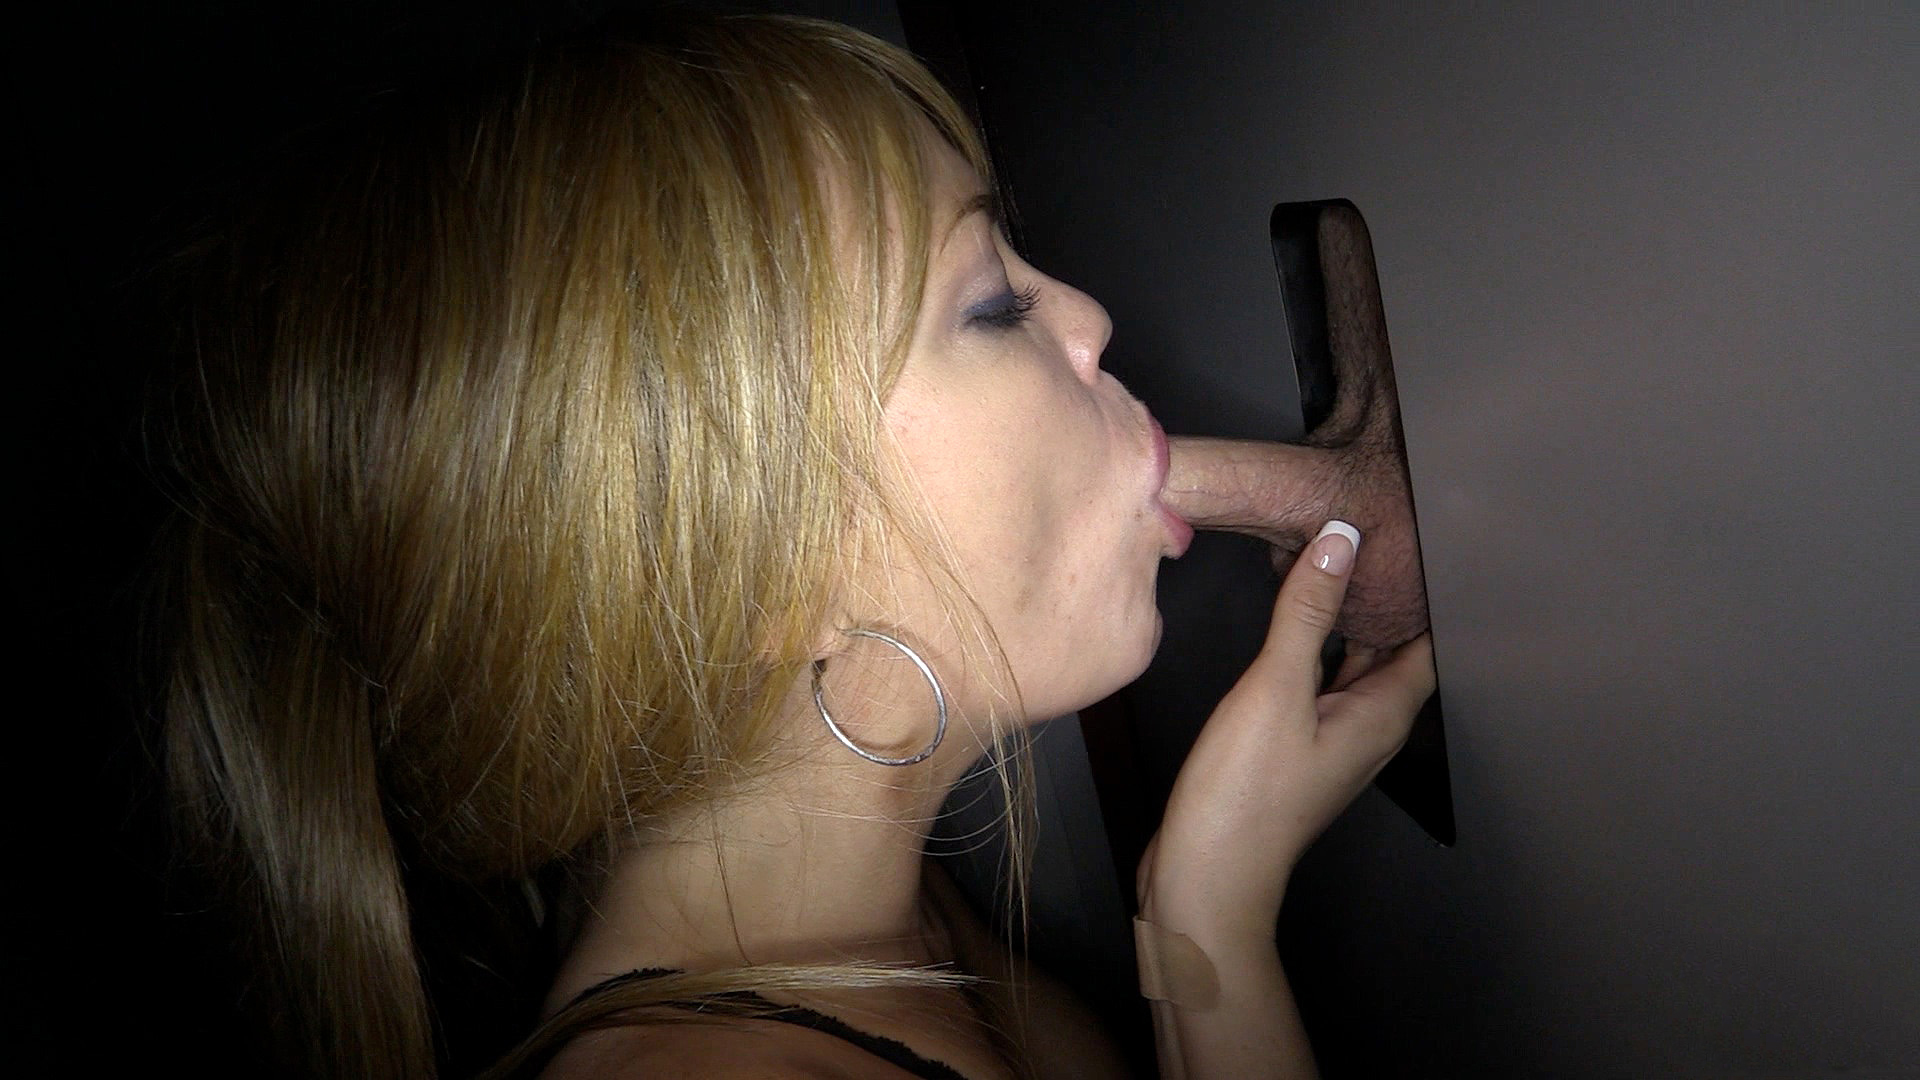 Two hot women happy with glory hole